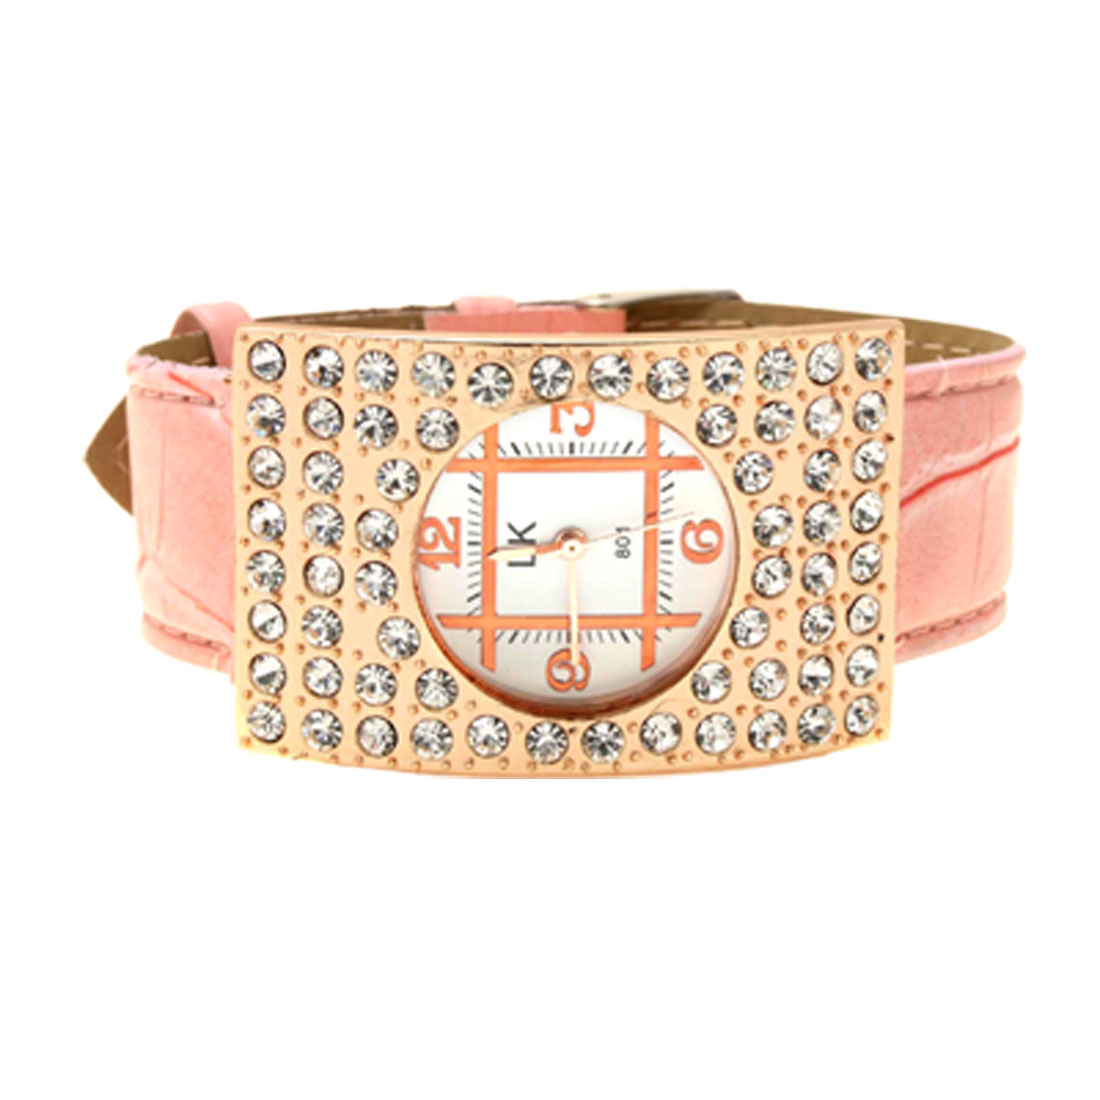 Fashion Jewelry Arciform Rhinestone Girls Womens Wrist Watch Pink Band